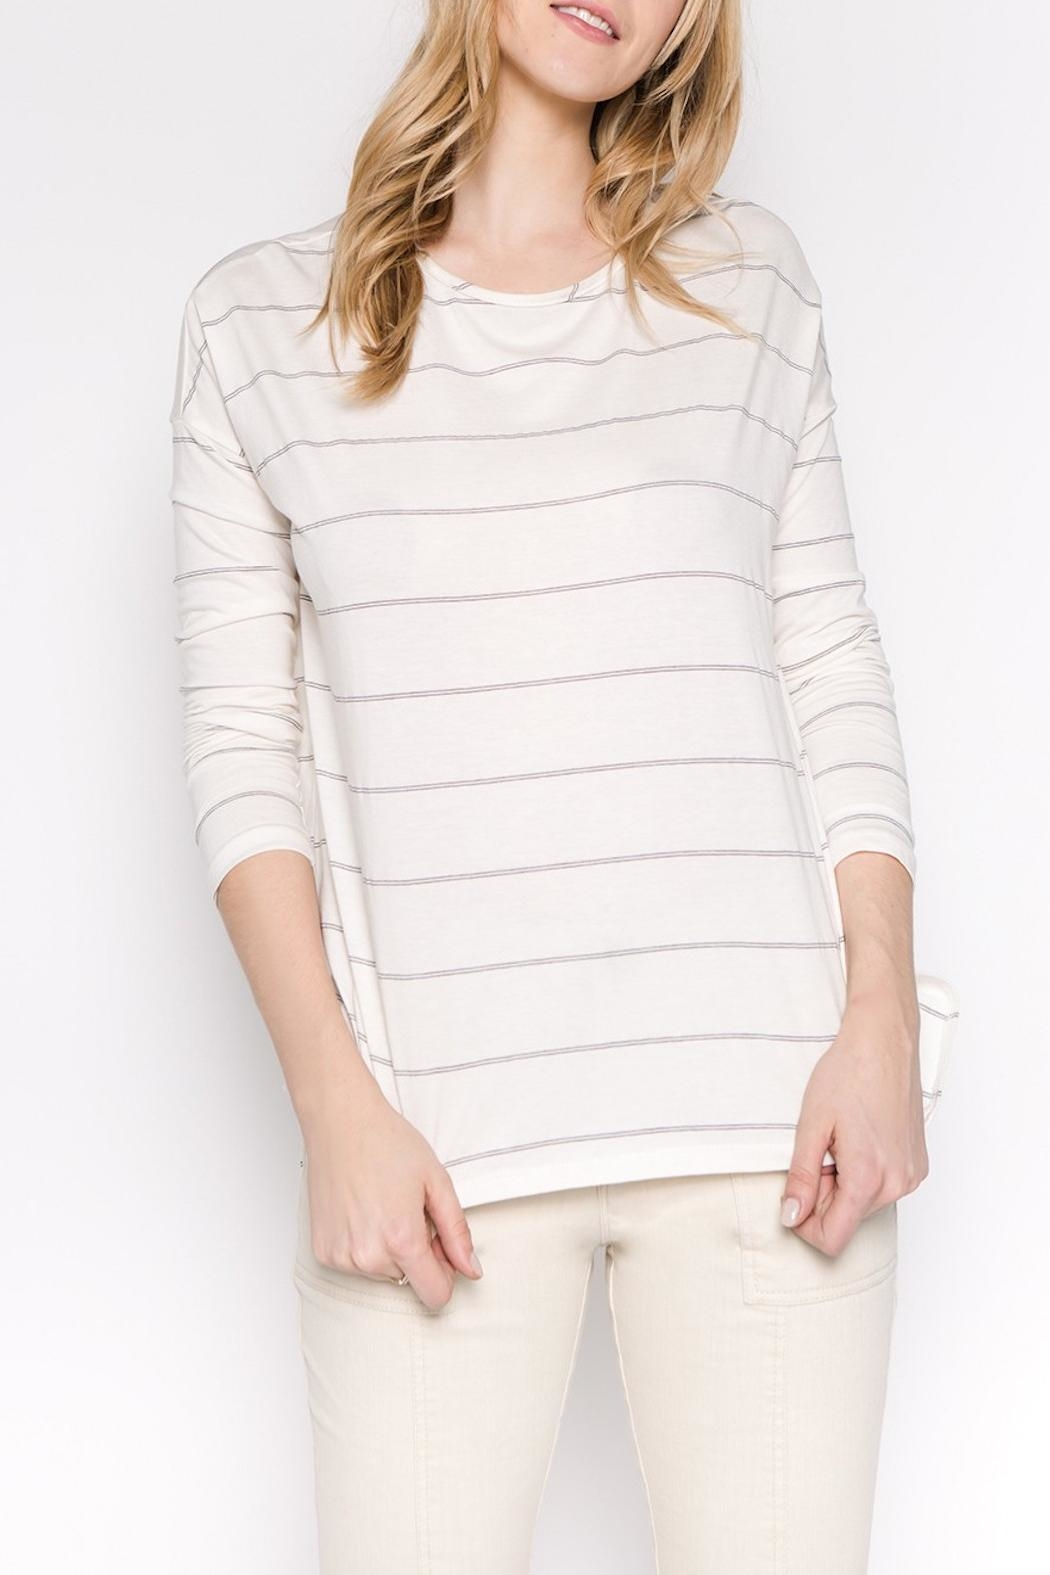 Apricot Lane Striped Casual Long-Sleeve - Main Image